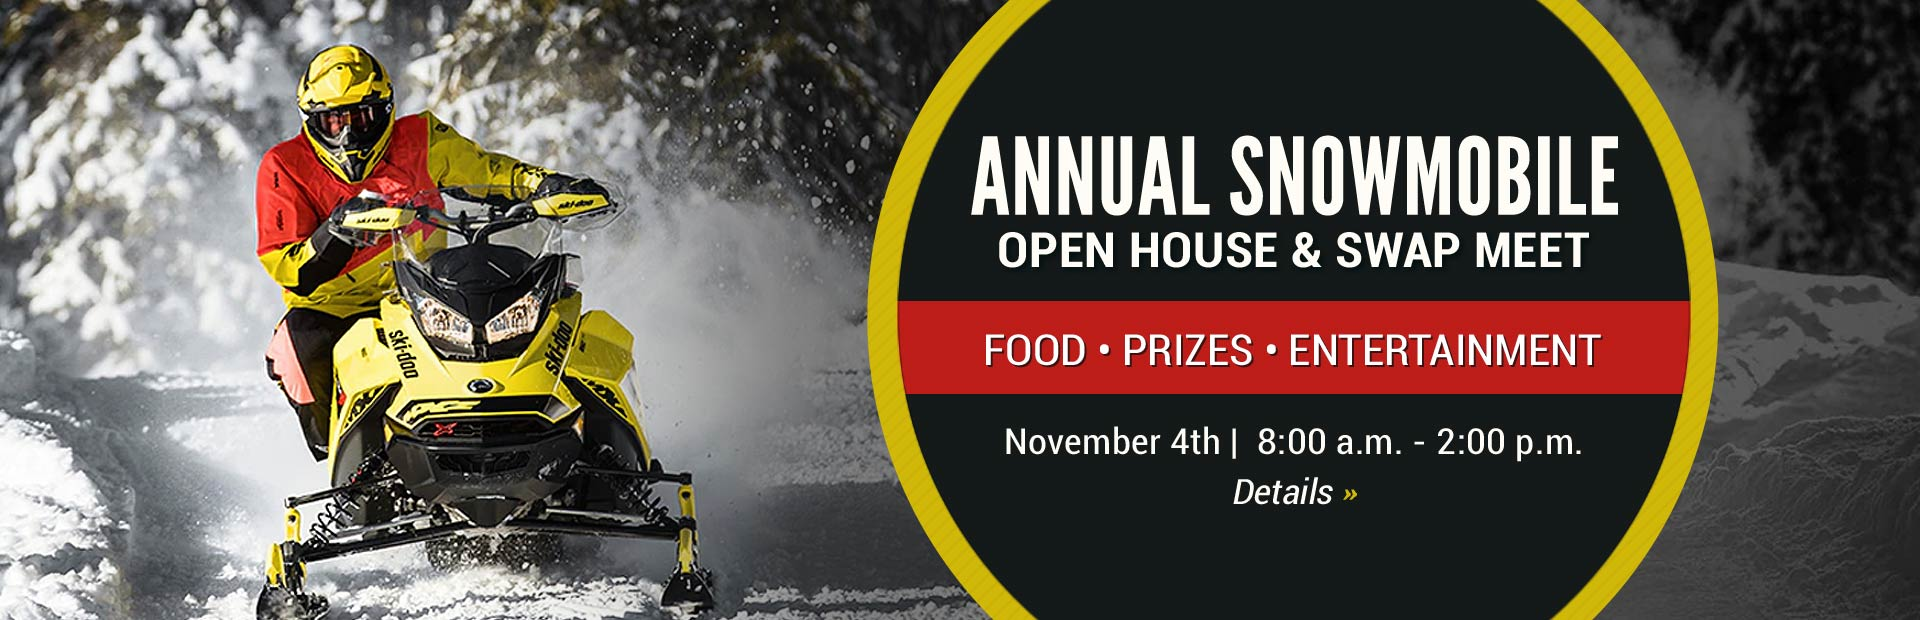 Join us November 4th for our Annual Snowmobile Open House & Swap Meet!